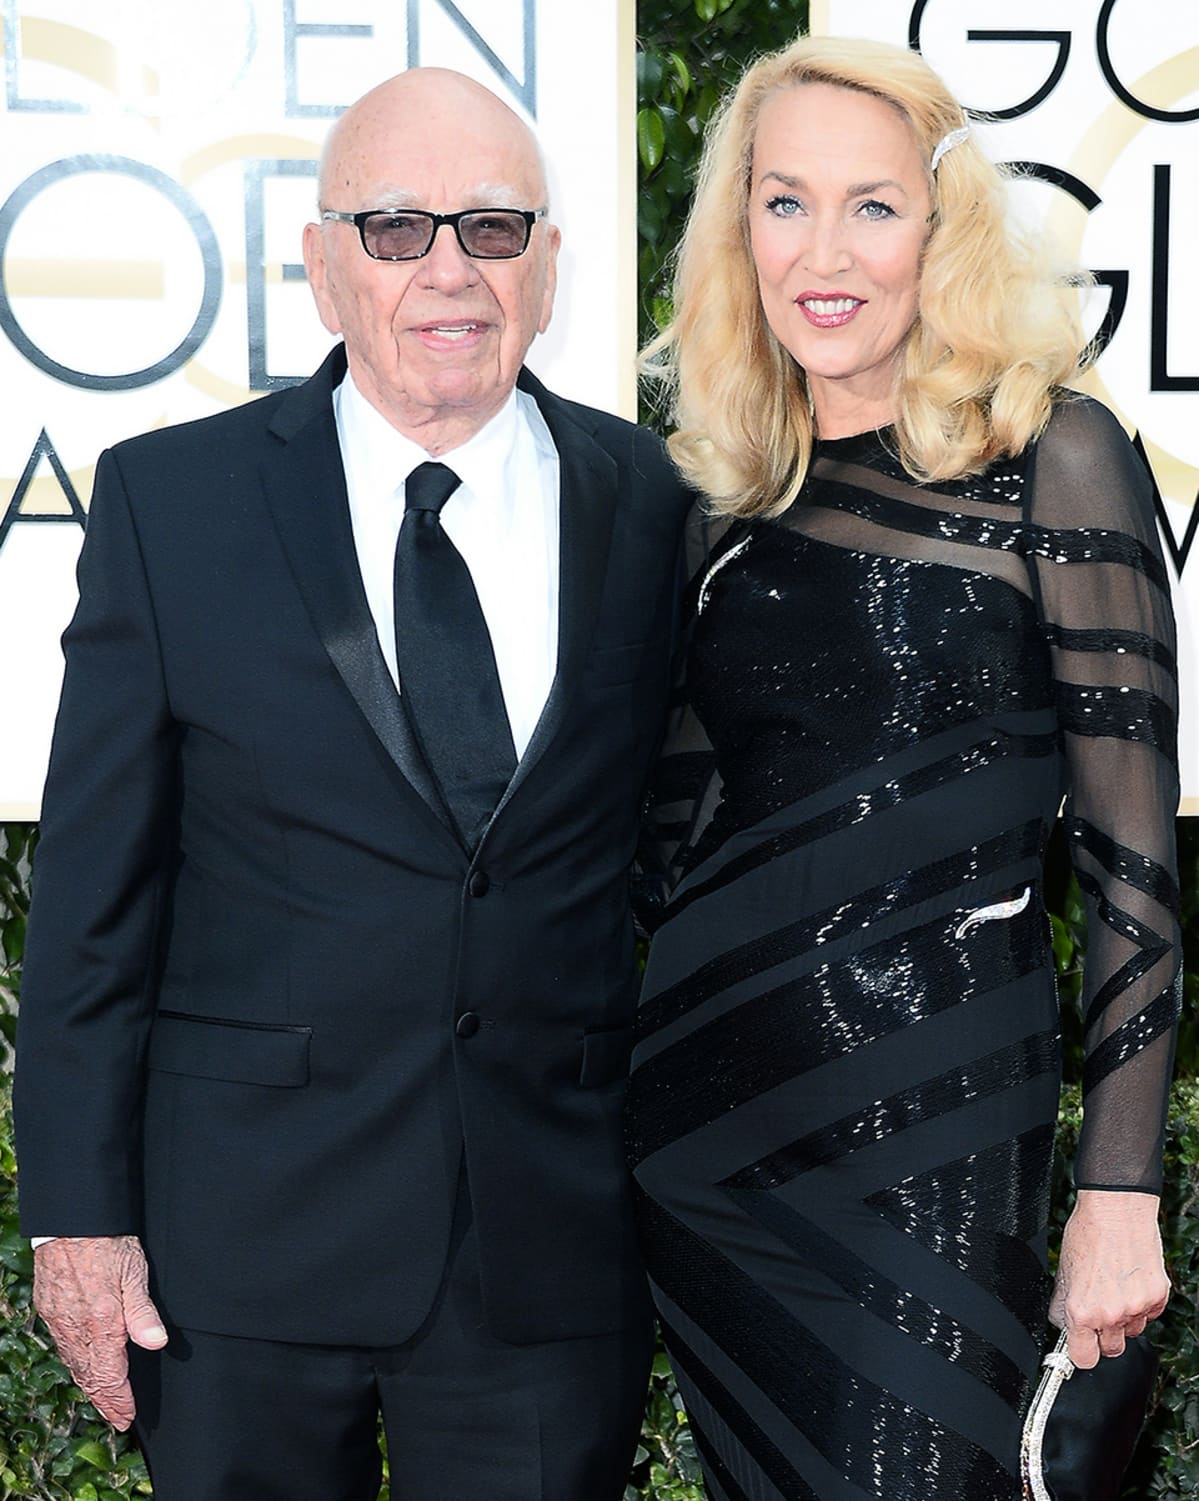 Rupert Murdoch ja Jerry Hall